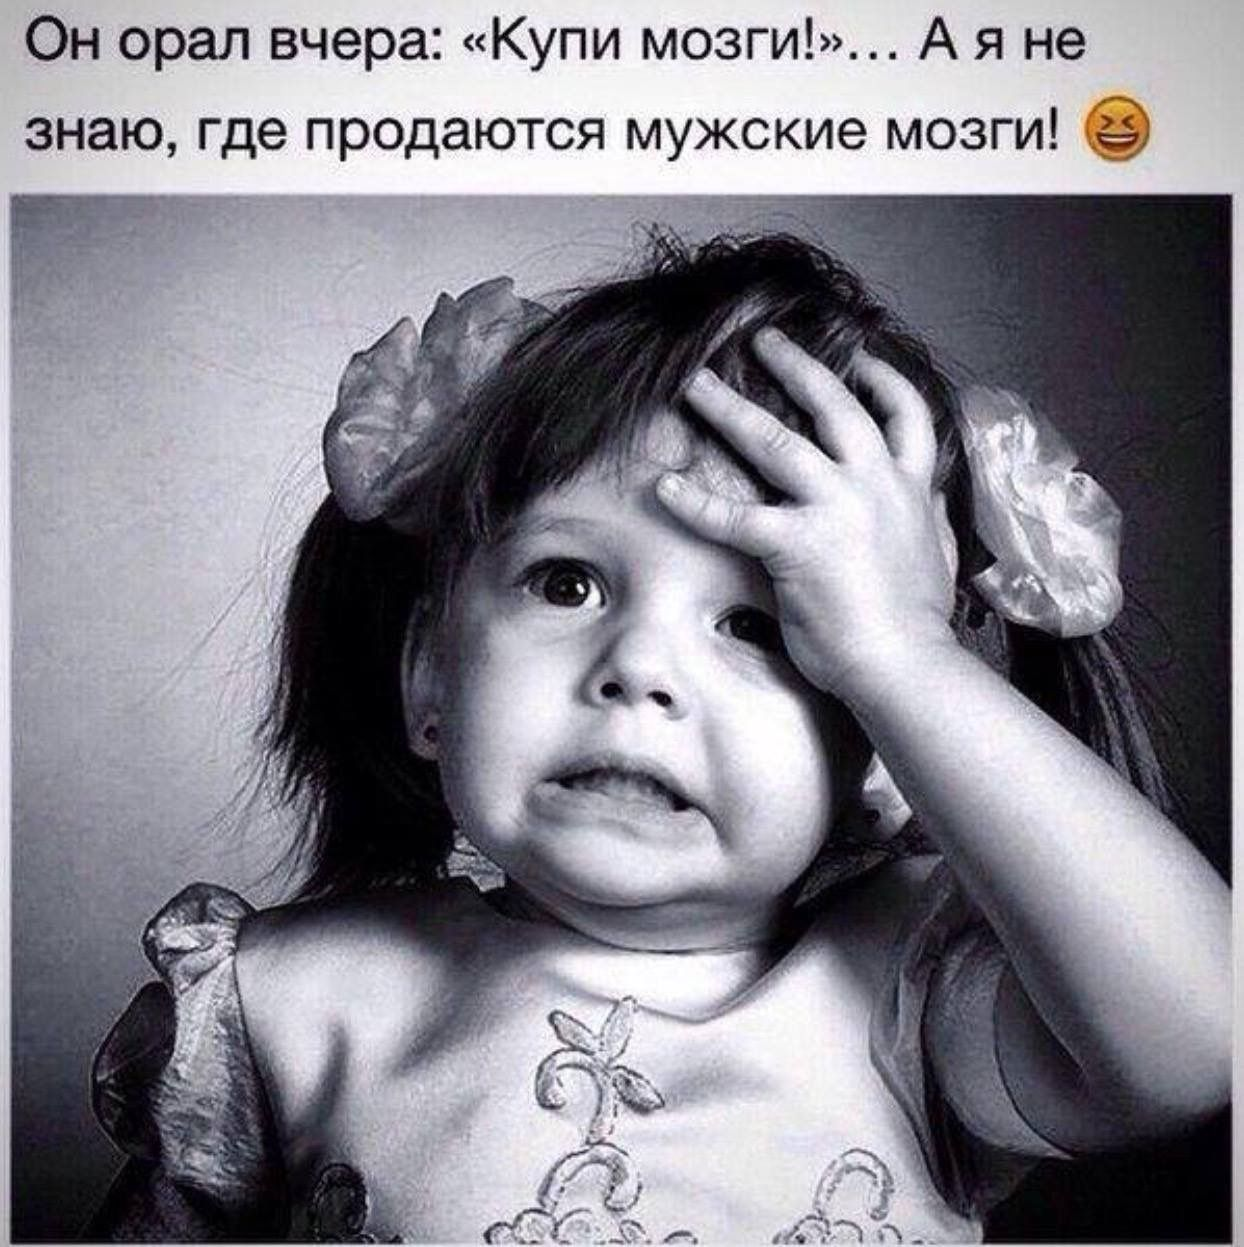 Pin By Angelina007 On Vesyolye Kartinki Yumor Funny Pictures For Kids Girl Humor Cute Quotes For Kids